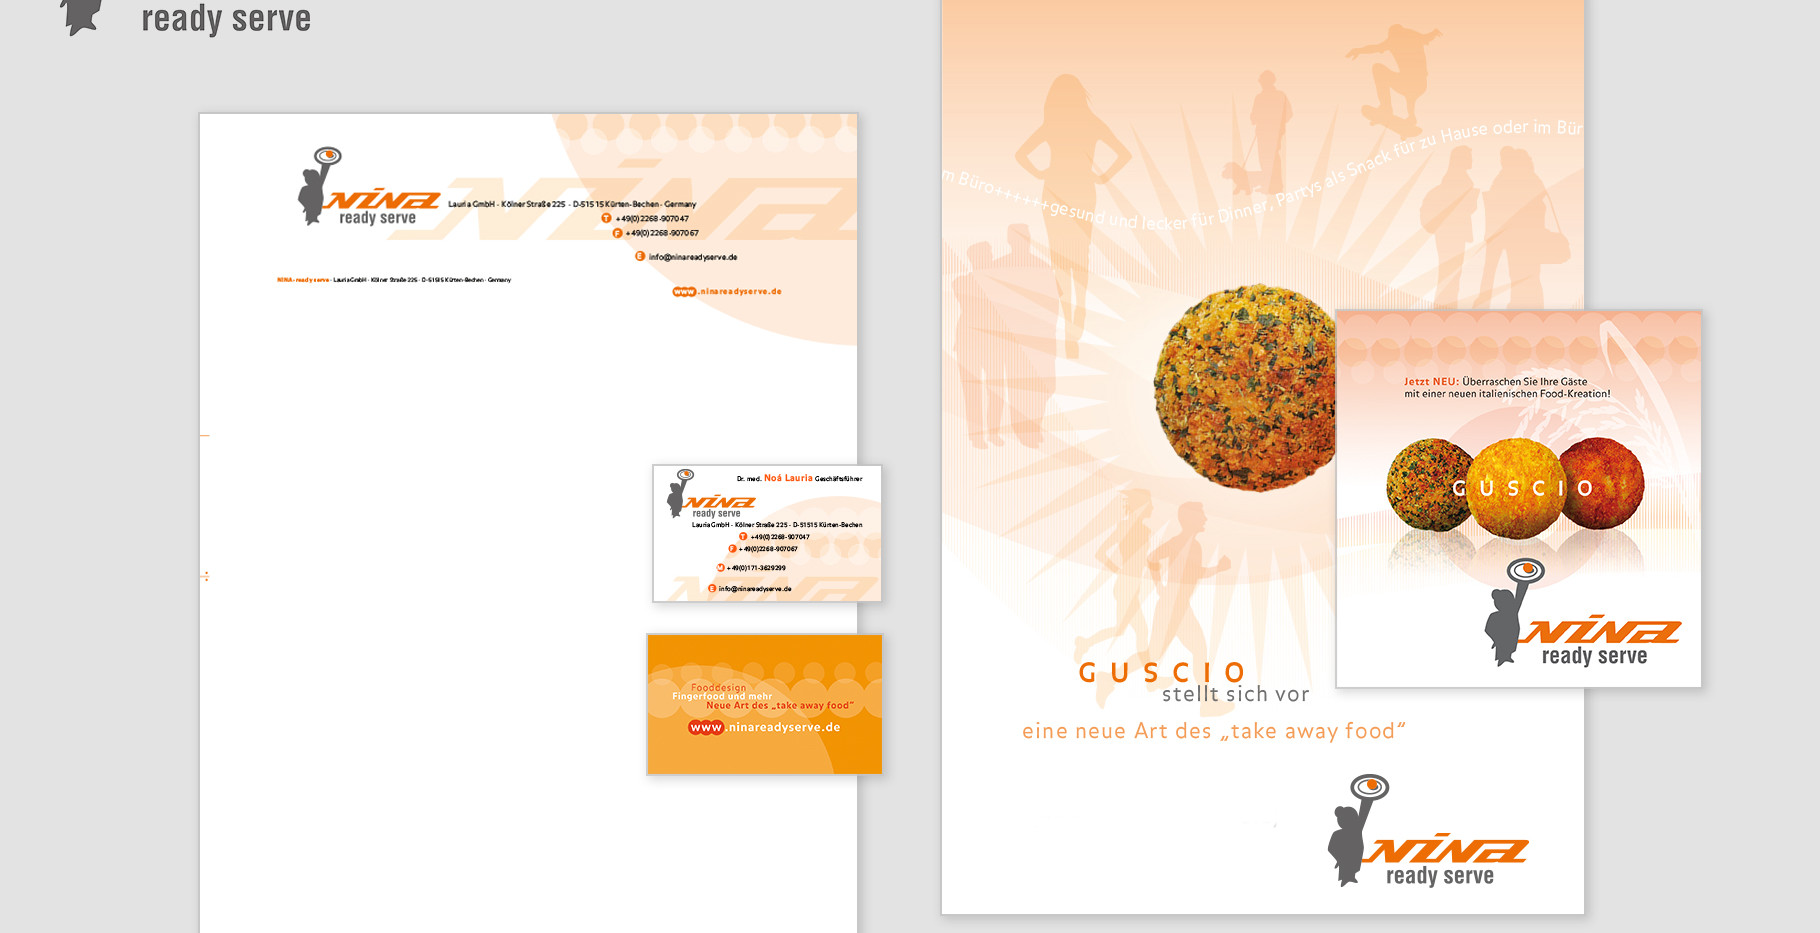 Corporate Identity - NINA ready serve